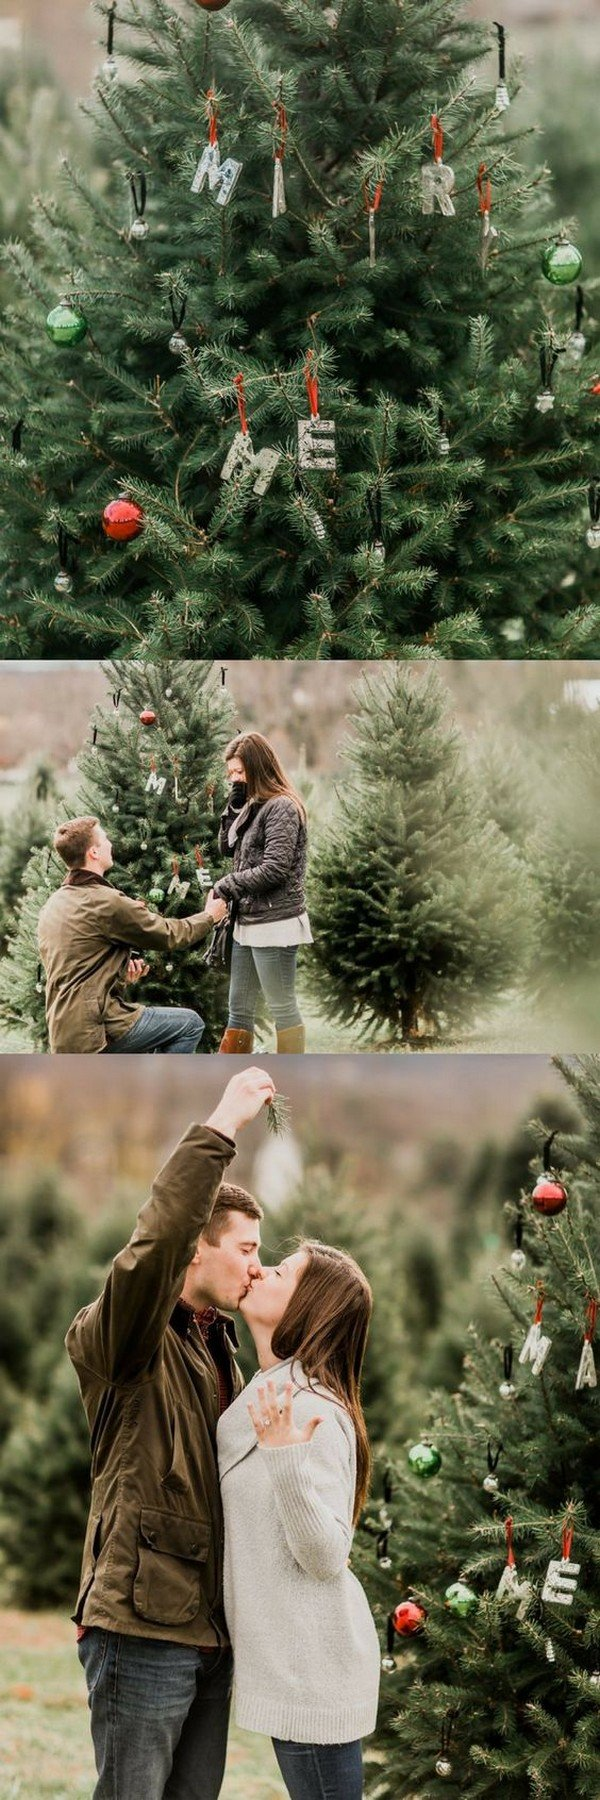 Christmas tree farm proposal ideas